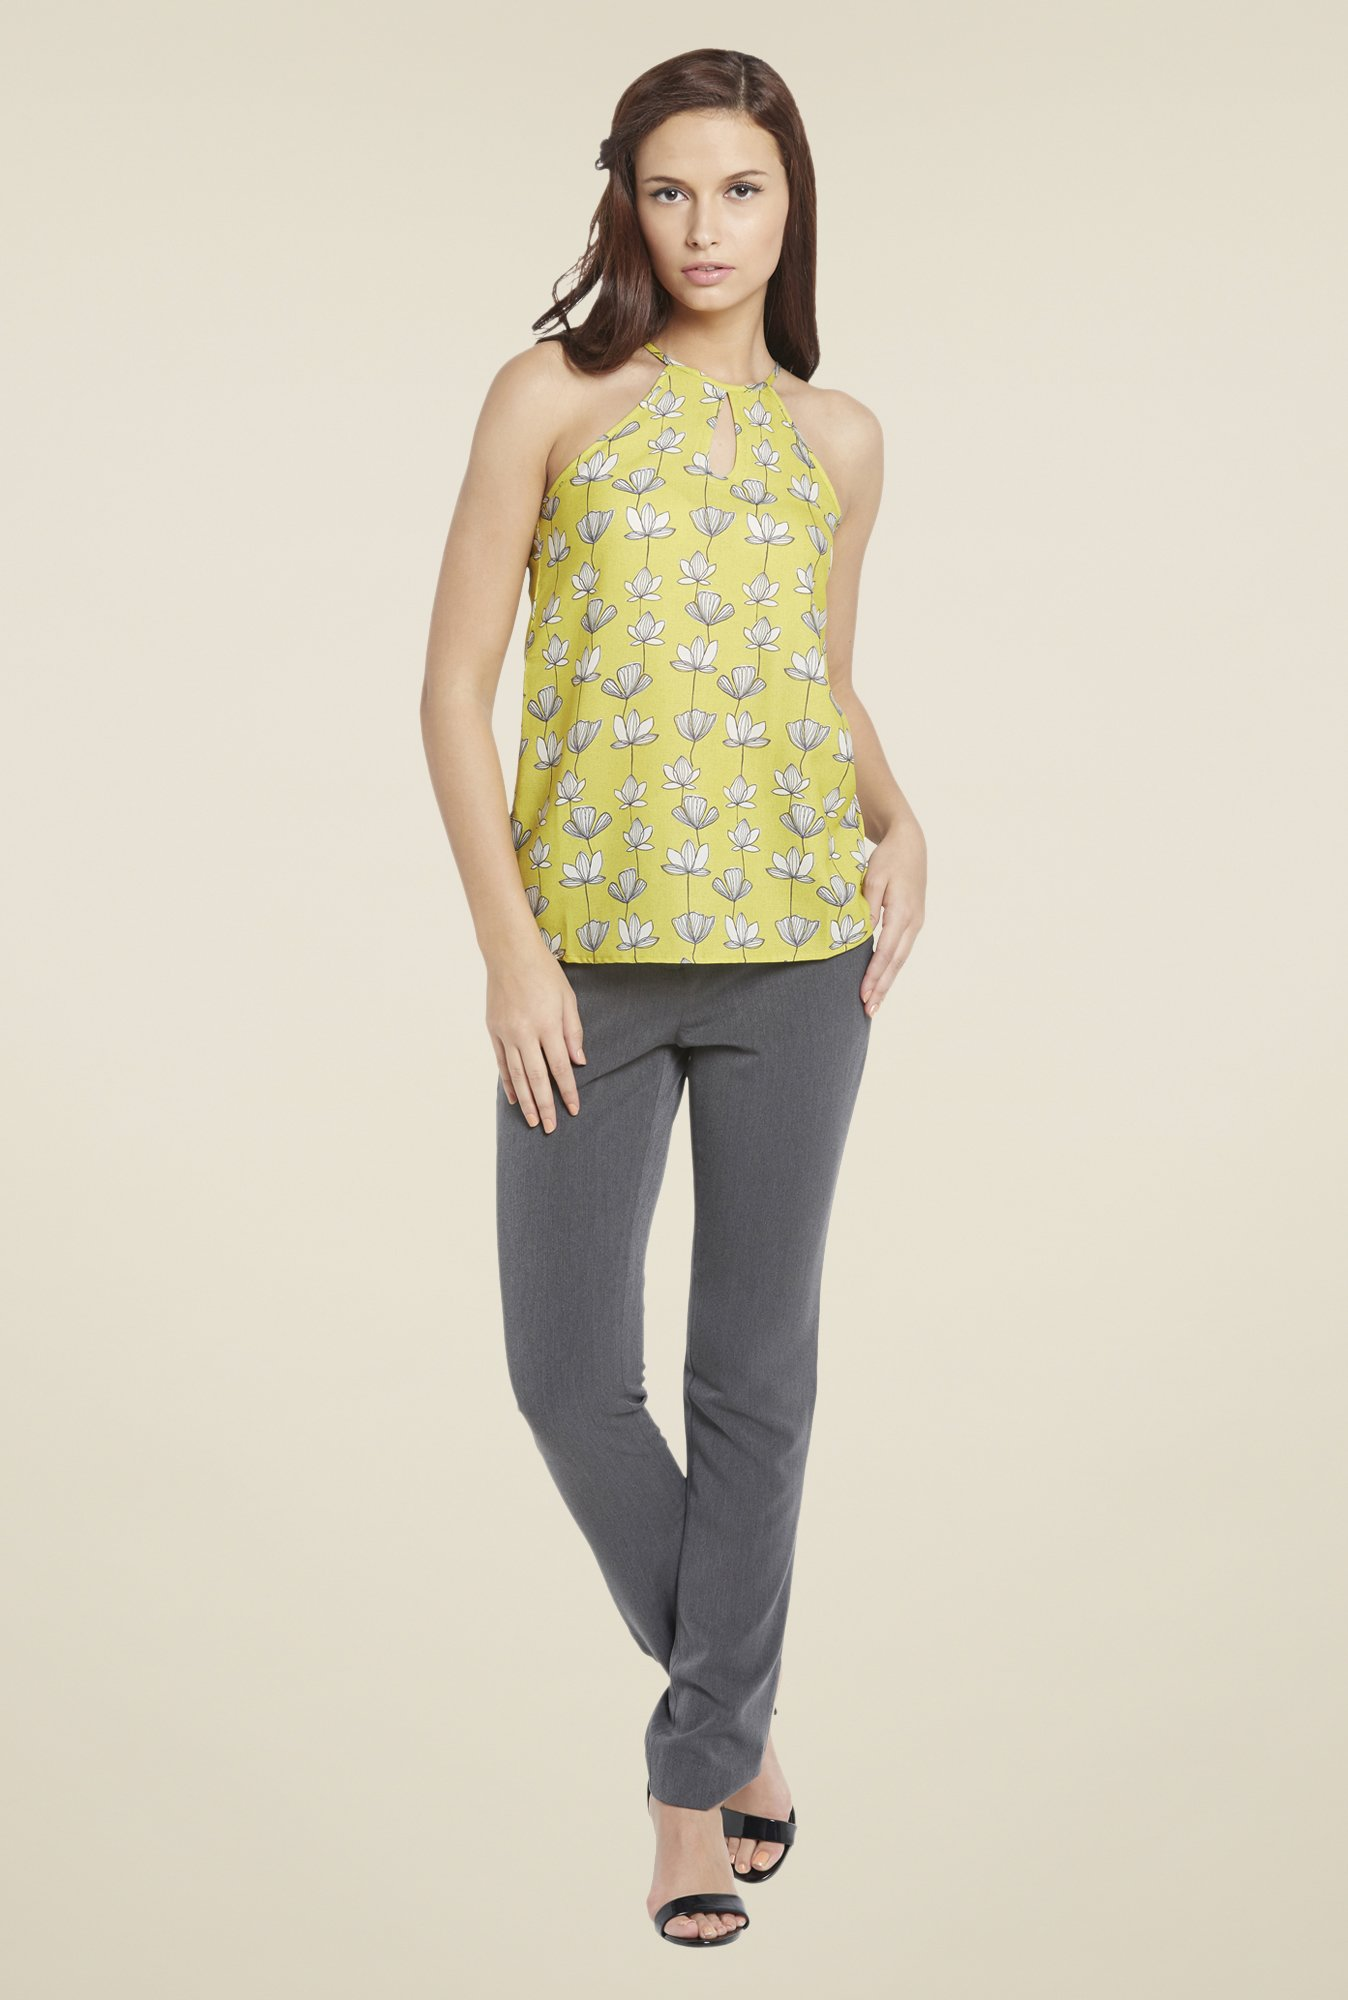 Globus Yellow Floral Print Top